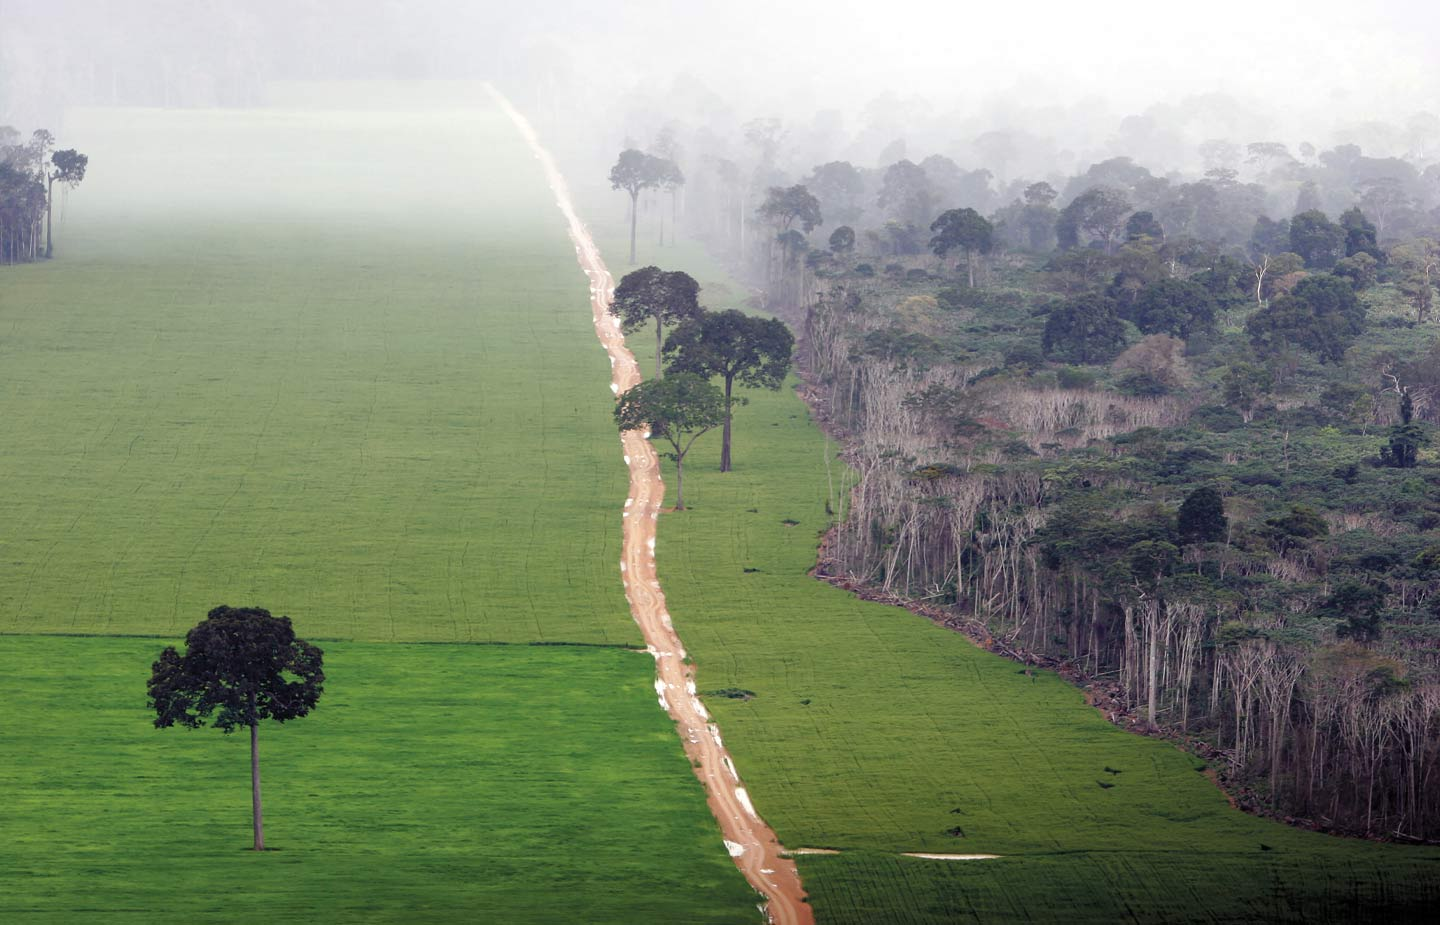 Image of a cleared forest in the Amazon jungle